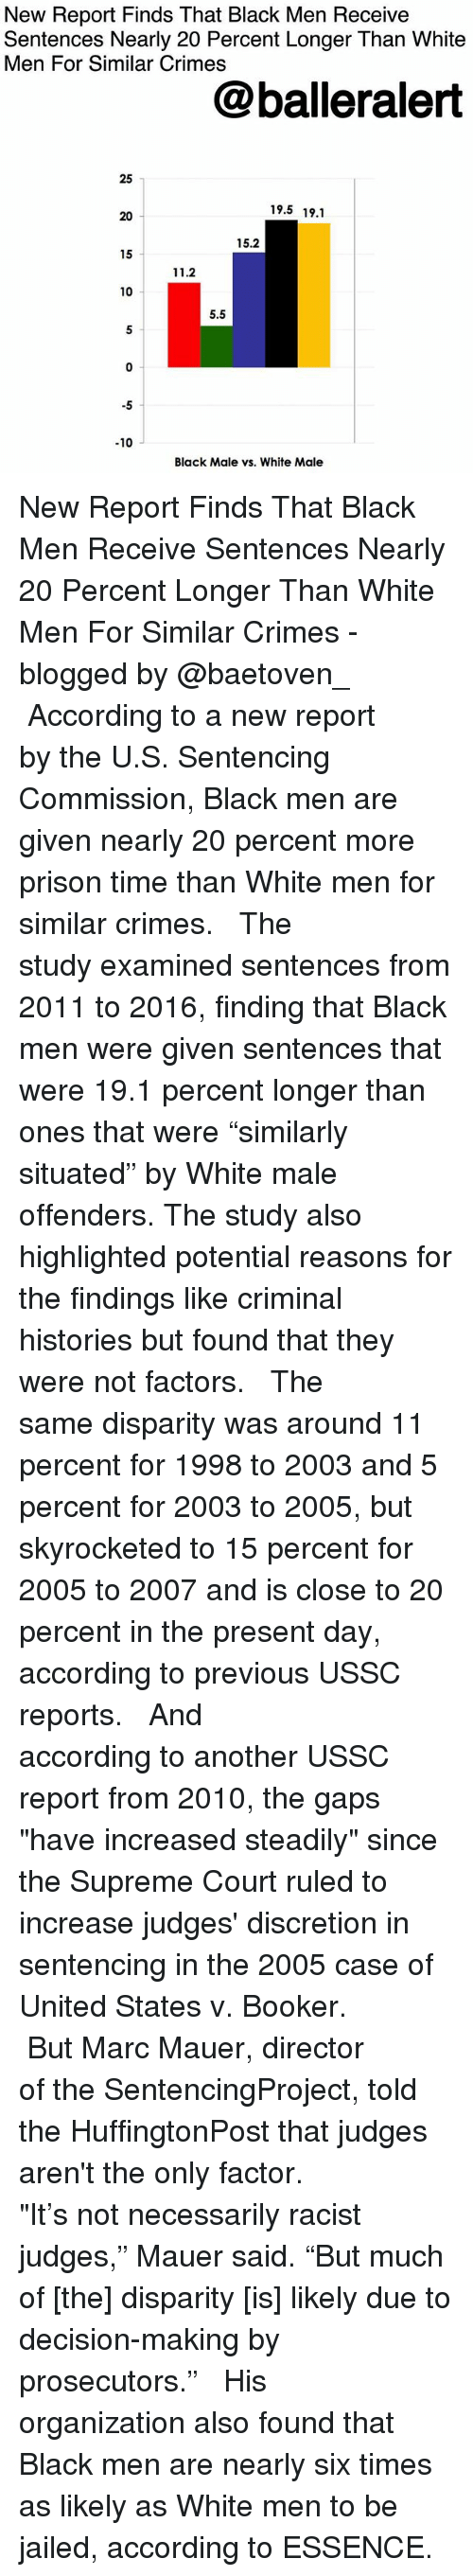 "Memes, Supreme, and Supreme Court: New Report Finds That Black Men Receive  Sentences Nearly 20 Percent Longer Than White  Men For Similar Crimes  @balleralert  25  19.5 19.1  20  15.2  15  11.2  10  5.5  5  -5  -10  Black Male vs. White Male New Report Finds That Black Men Receive Sentences Nearly 20 Percent Longer Than White Men For Similar Crimes - blogged by @baetoven_ ⠀⠀⠀⠀⠀⠀⠀ ⠀⠀⠀⠀⠀⠀⠀ According to a new report by the U.S. Sentencing Commission, Black men are given nearly 20 percent more prison time than White men for similar crimes. ⠀⠀⠀⠀⠀⠀⠀ ⠀⠀⠀⠀⠀⠀⠀ The study examined sentences from 2011 to 2016, finding that Black men were given sentences that were 19.1 percent longer than ones that were ""similarly situated"" by White male offenders. The study also highlighted potential reasons for the findings like criminal histories but found that they were not factors. ⠀⠀⠀⠀⠀⠀⠀ ⠀⠀⠀⠀⠀⠀⠀ The same disparity was around 11 percent for 1998 to 2003 and 5 percent for 2003 to 2005, but skyrocketed to 15 percent for 2005 to 2007 and is close to 20 percent in the present day, according to previous USSC reports. ⠀⠀⠀⠀⠀⠀⠀ ⠀⠀⠀⠀⠀⠀⠀ And according to another USSC report from 2010, the gaps ""have increased steadily"" since the Supreme Court ruled to increase judges' discretion in sentencing in the 2005 case of United States v. Booker. ⠀⠀⠀⠀⠀⠀⠀ ⠀⠀⠀⠀⠀⠀⠀ But Marc Mauer, director of the SentencingProject, told the HuffingtonPost that judges aren't the only factor. ⠀⠀⠀⠀⠀⠀⠀ ⠀⠀⠀⠀⠀⠀⠀ ""It's not necessarily racist judges,"" Mauer said. ""But much of [the] disparity [is] likely due to decision-making by prosecutors."" ⠀⠀⠀⠀⠀⠀⠀ ⠀⠀⠀⠀⠀⠀⠀ His organization also found that Black men are nearly six times as likely as White men to be jailed, according to ESSENCE."